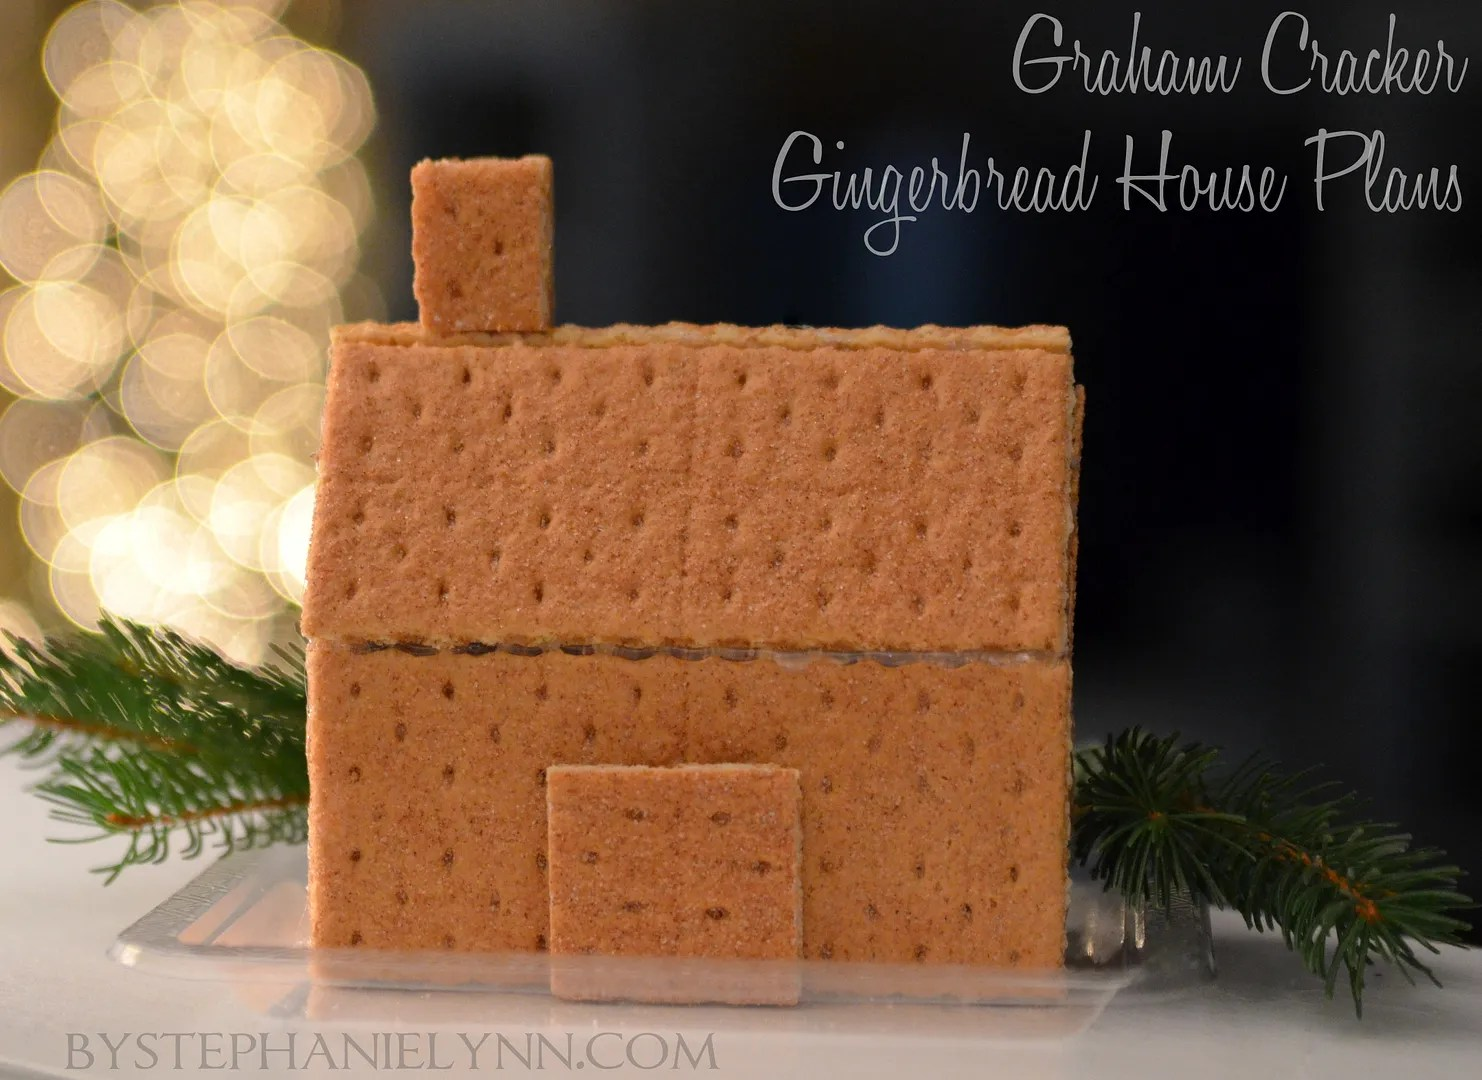 How To Make Glued Graham Cracker Gingerbread Houses Quick & Easy